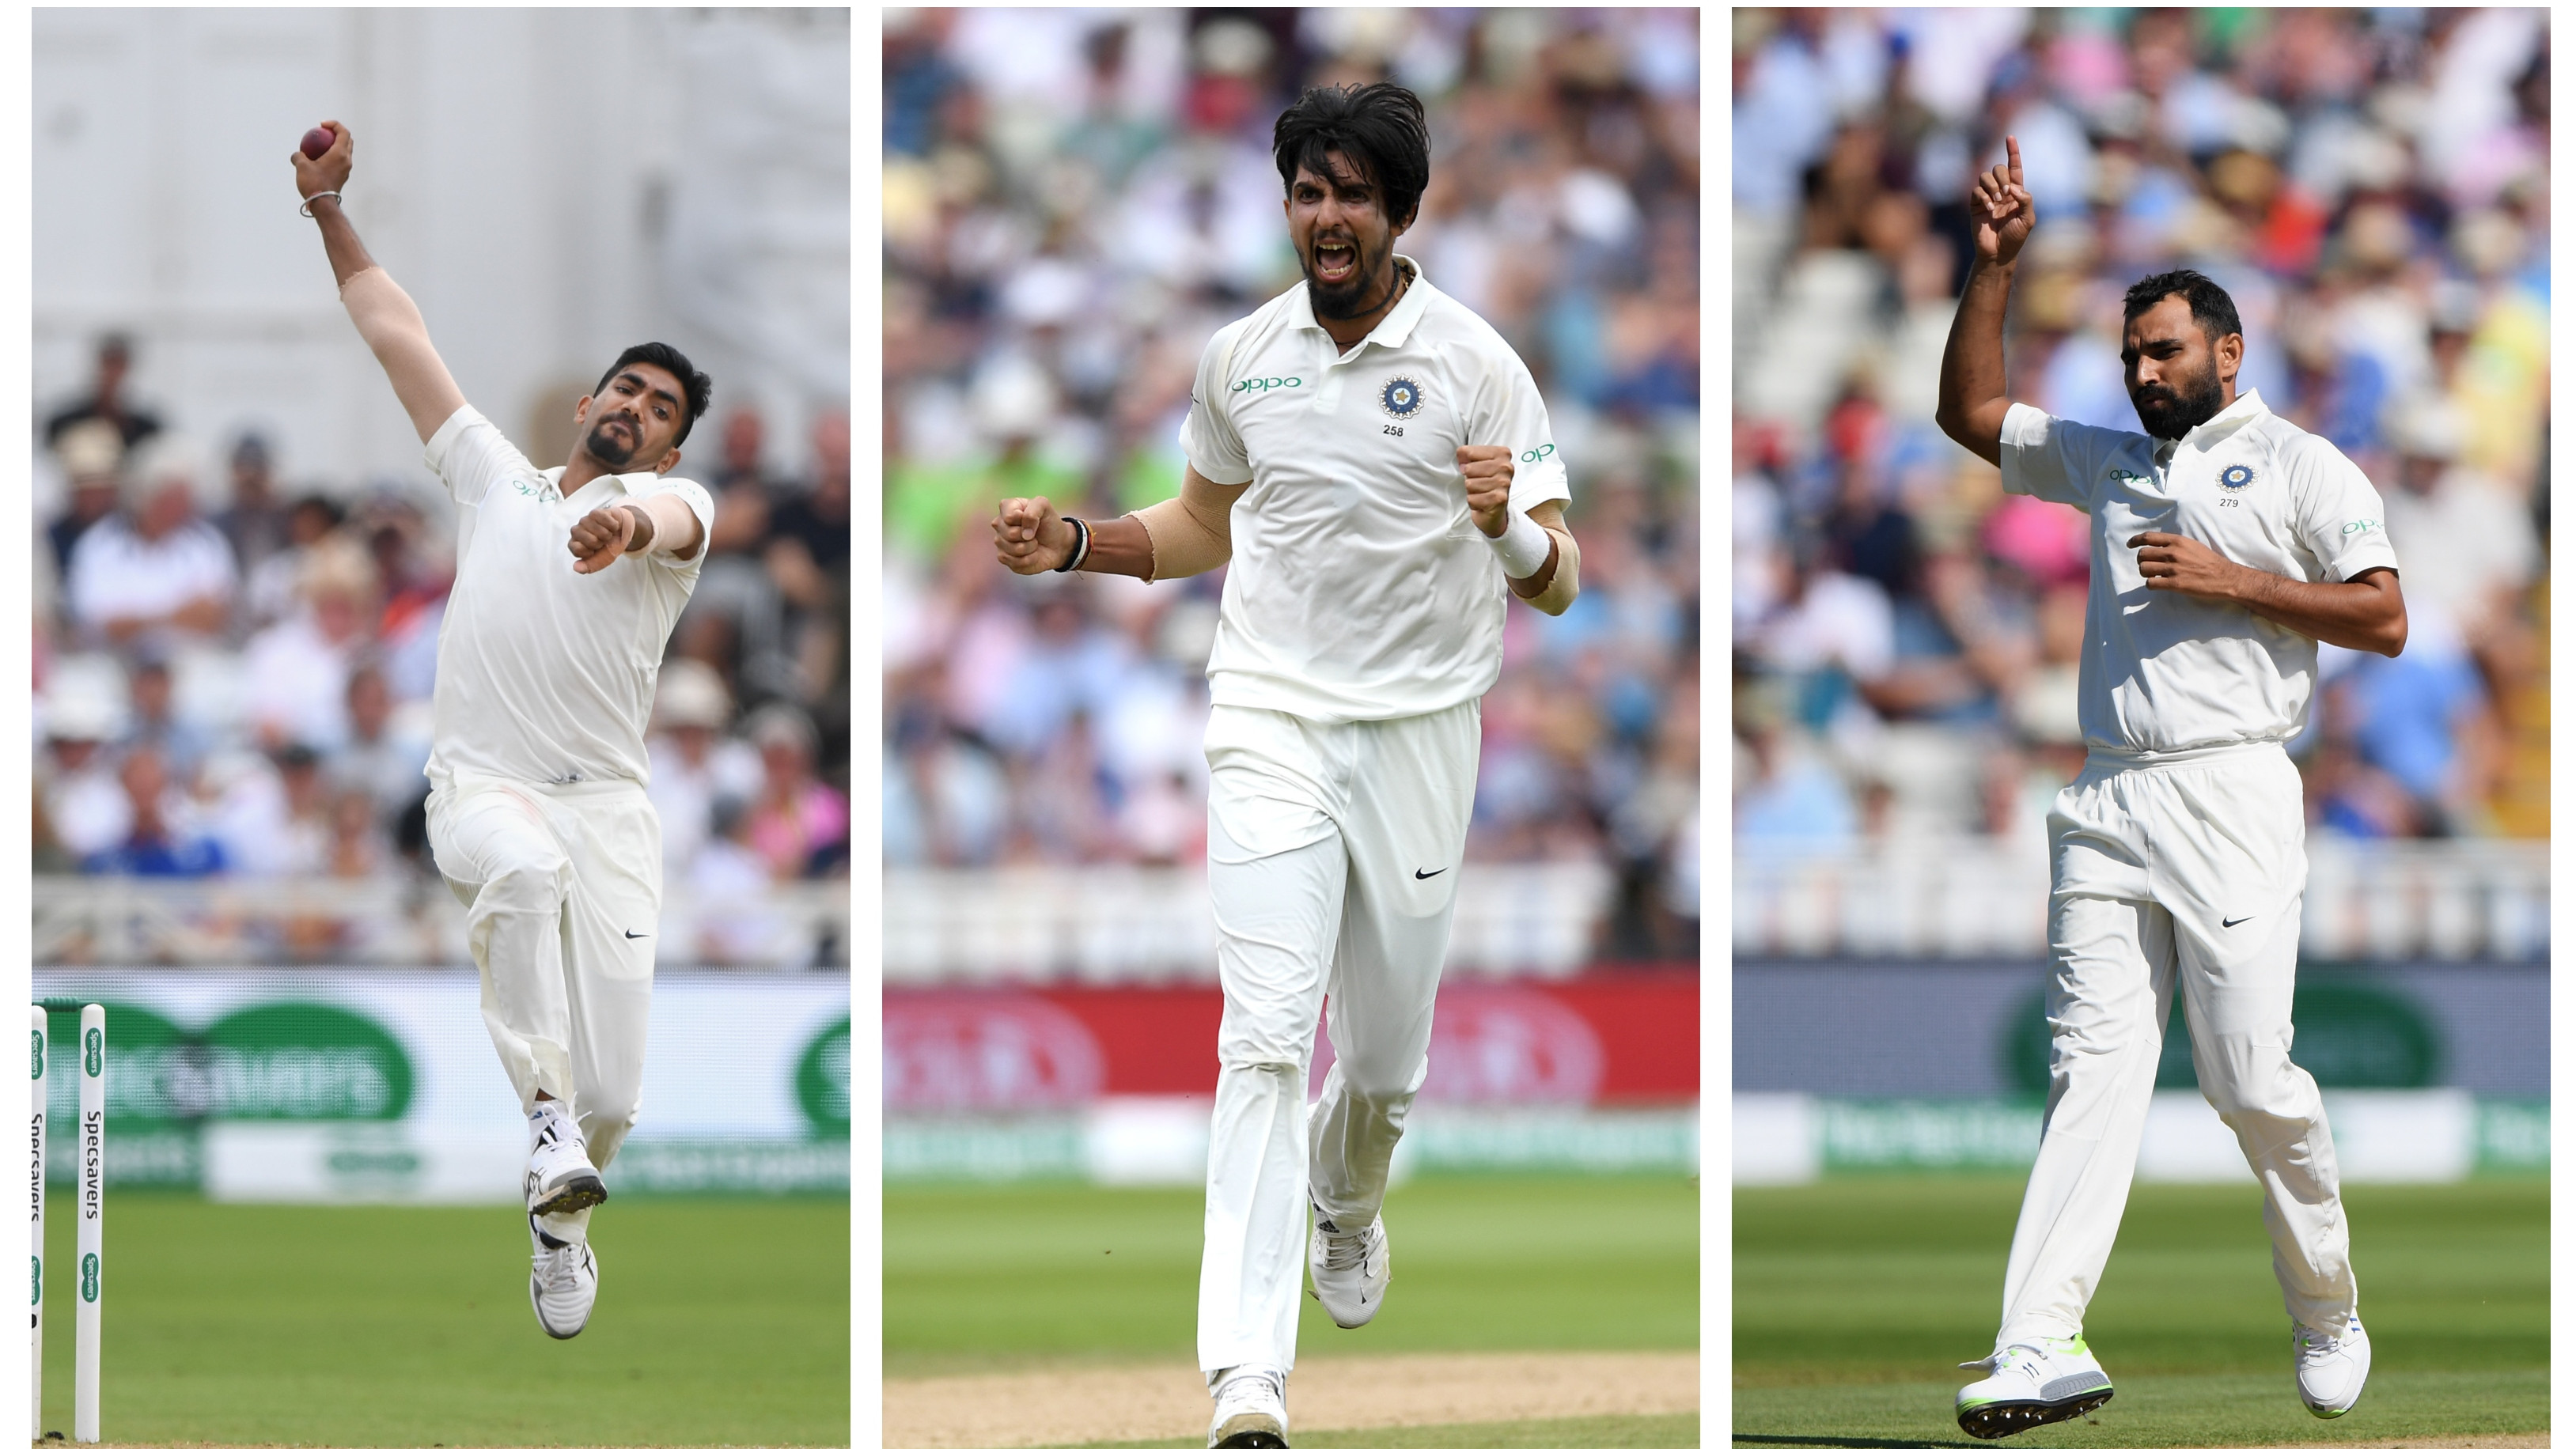 Srinath mighty impressed with Indian pacers' planning and execution in England